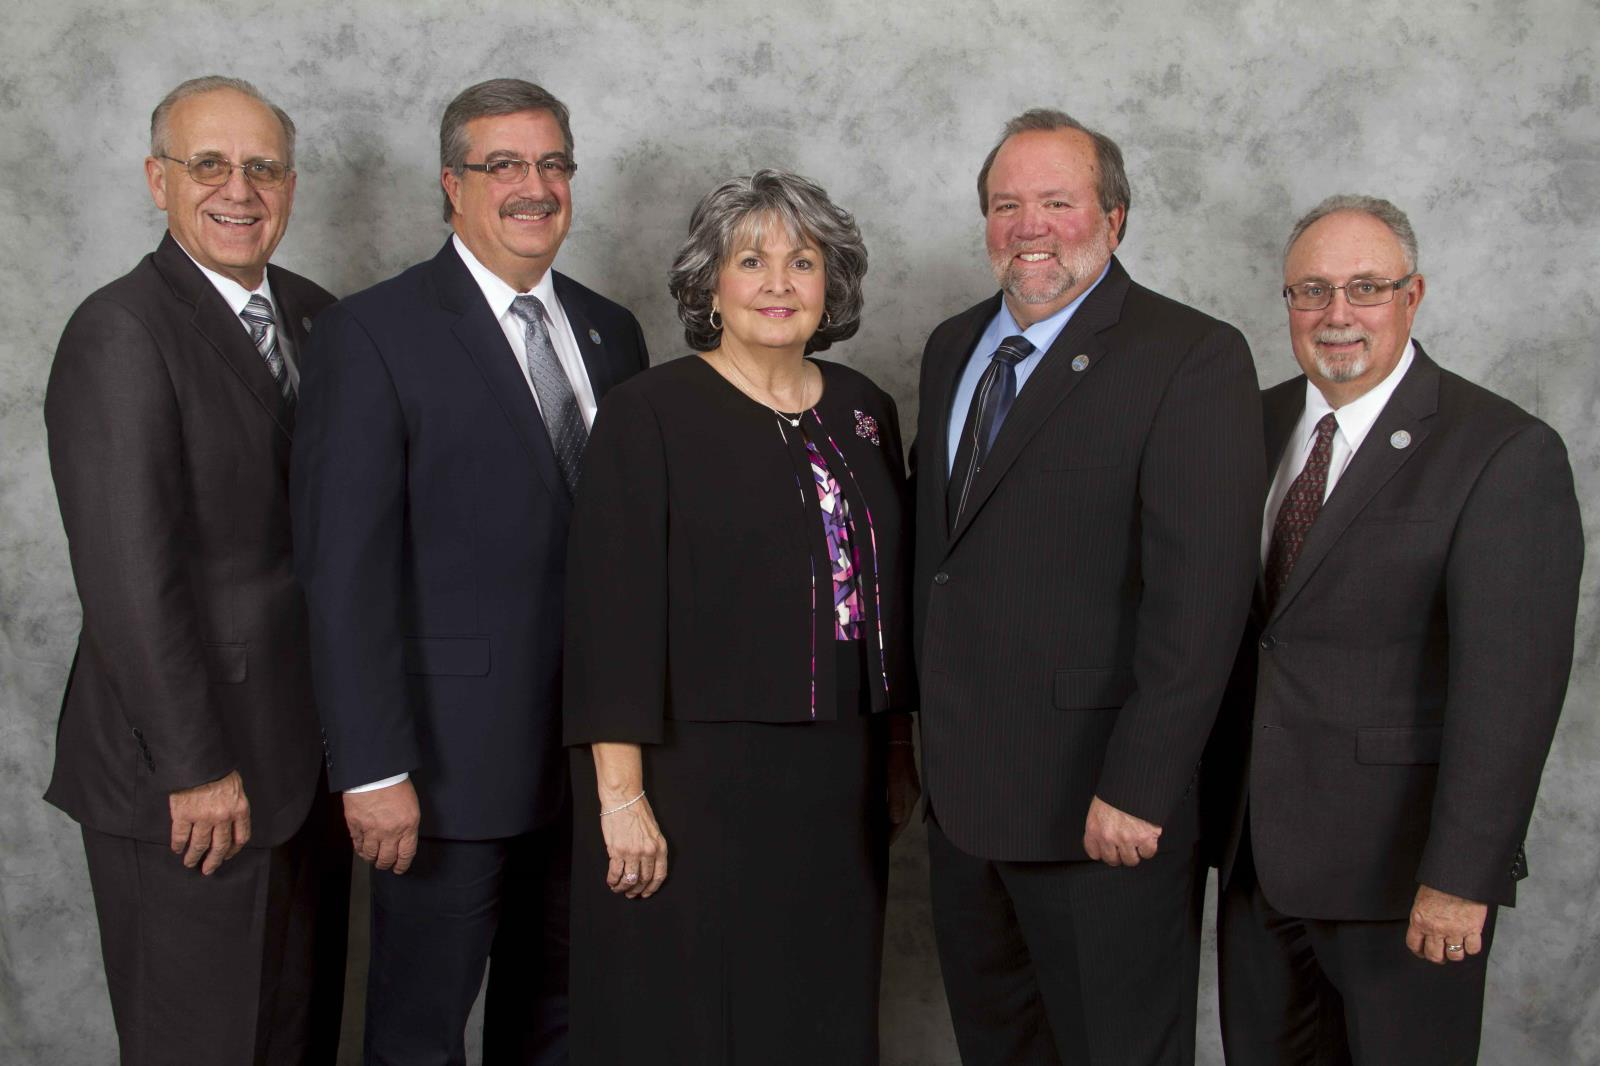 Town Council Group Photo